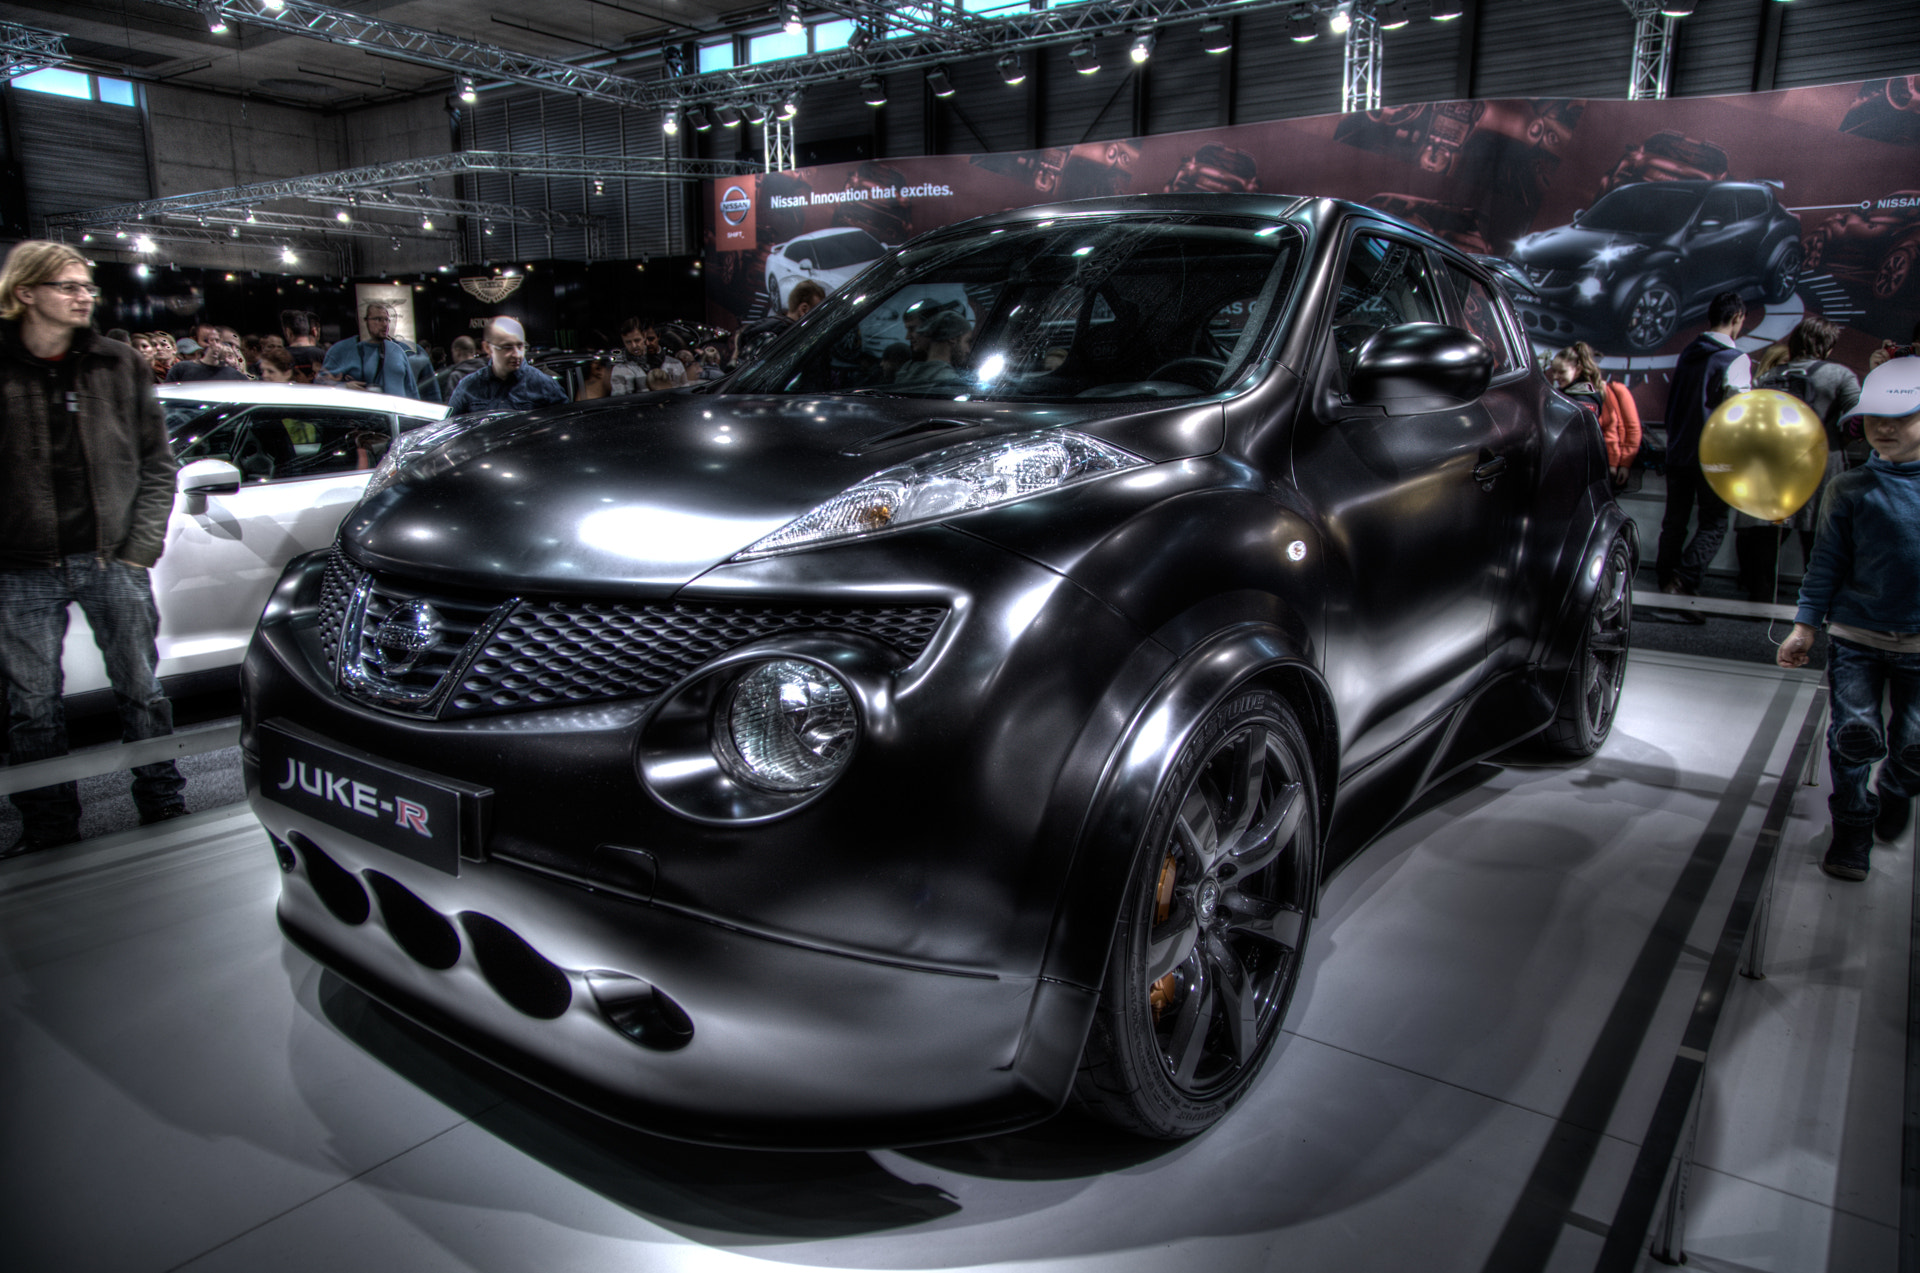 Photograph Nissan Juke-R Concept Car by Christopher Radlinger on 500px